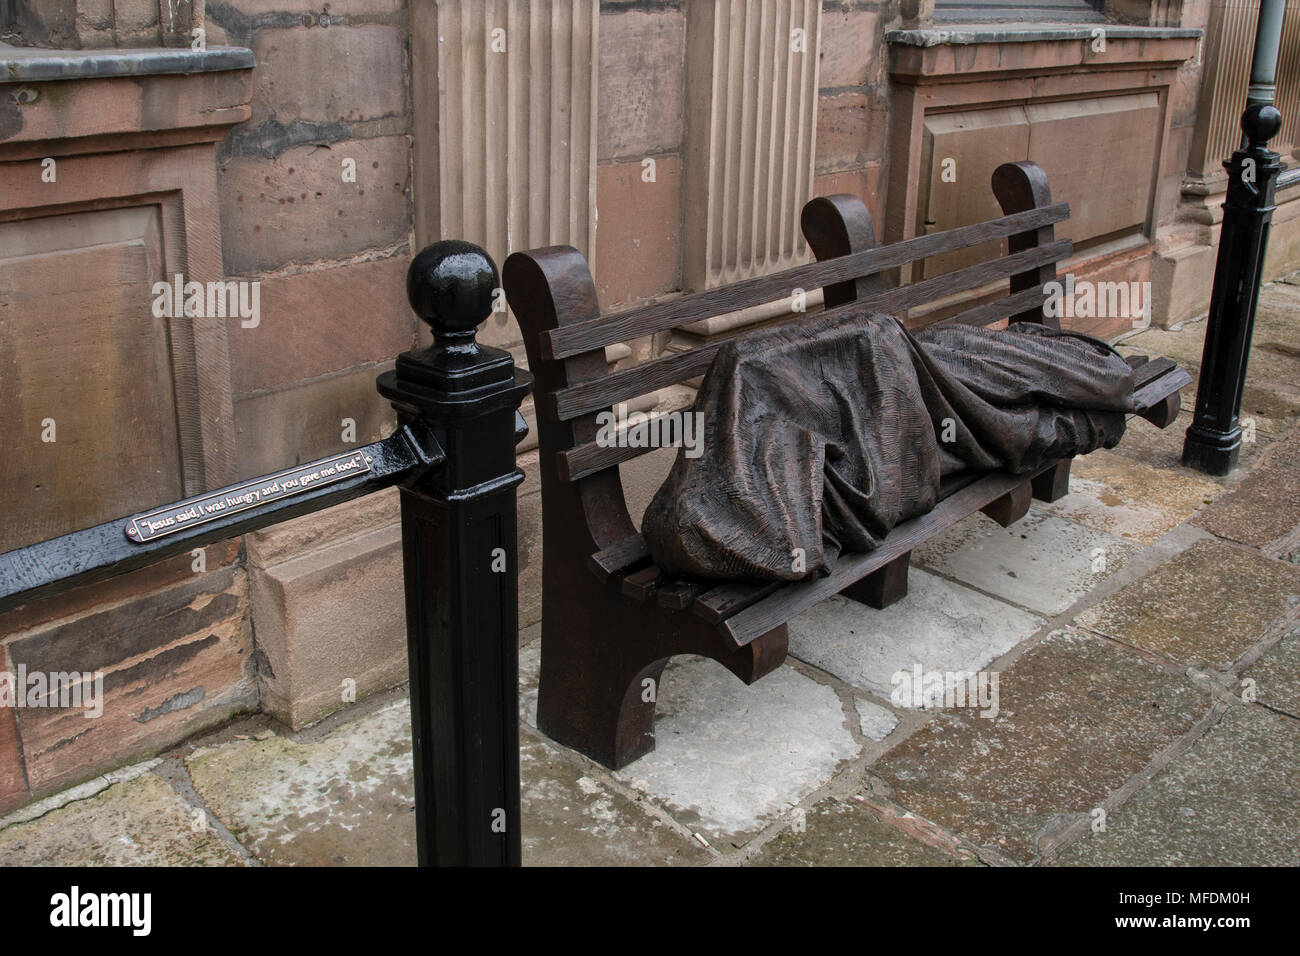 St. Annes Sq, Manchester, UK. 25th. April 2018: Homeless Jesus sculpture in St. Annes Square Manchester - a social comment on the homeless problem in the city. Homeless Jesus, also known as Jesus the Homeless, is the work of a Canadian sculptor and devout Catholic, Timothy Schmalz, whose original casting of Jesus on a park bench was installed in Toronto. Further casts have been made from the mould and have appeared in several cities around the world including the Papal Offices in Rome.. Credit: Dave Ellison/Alamy Live News - Stock Image